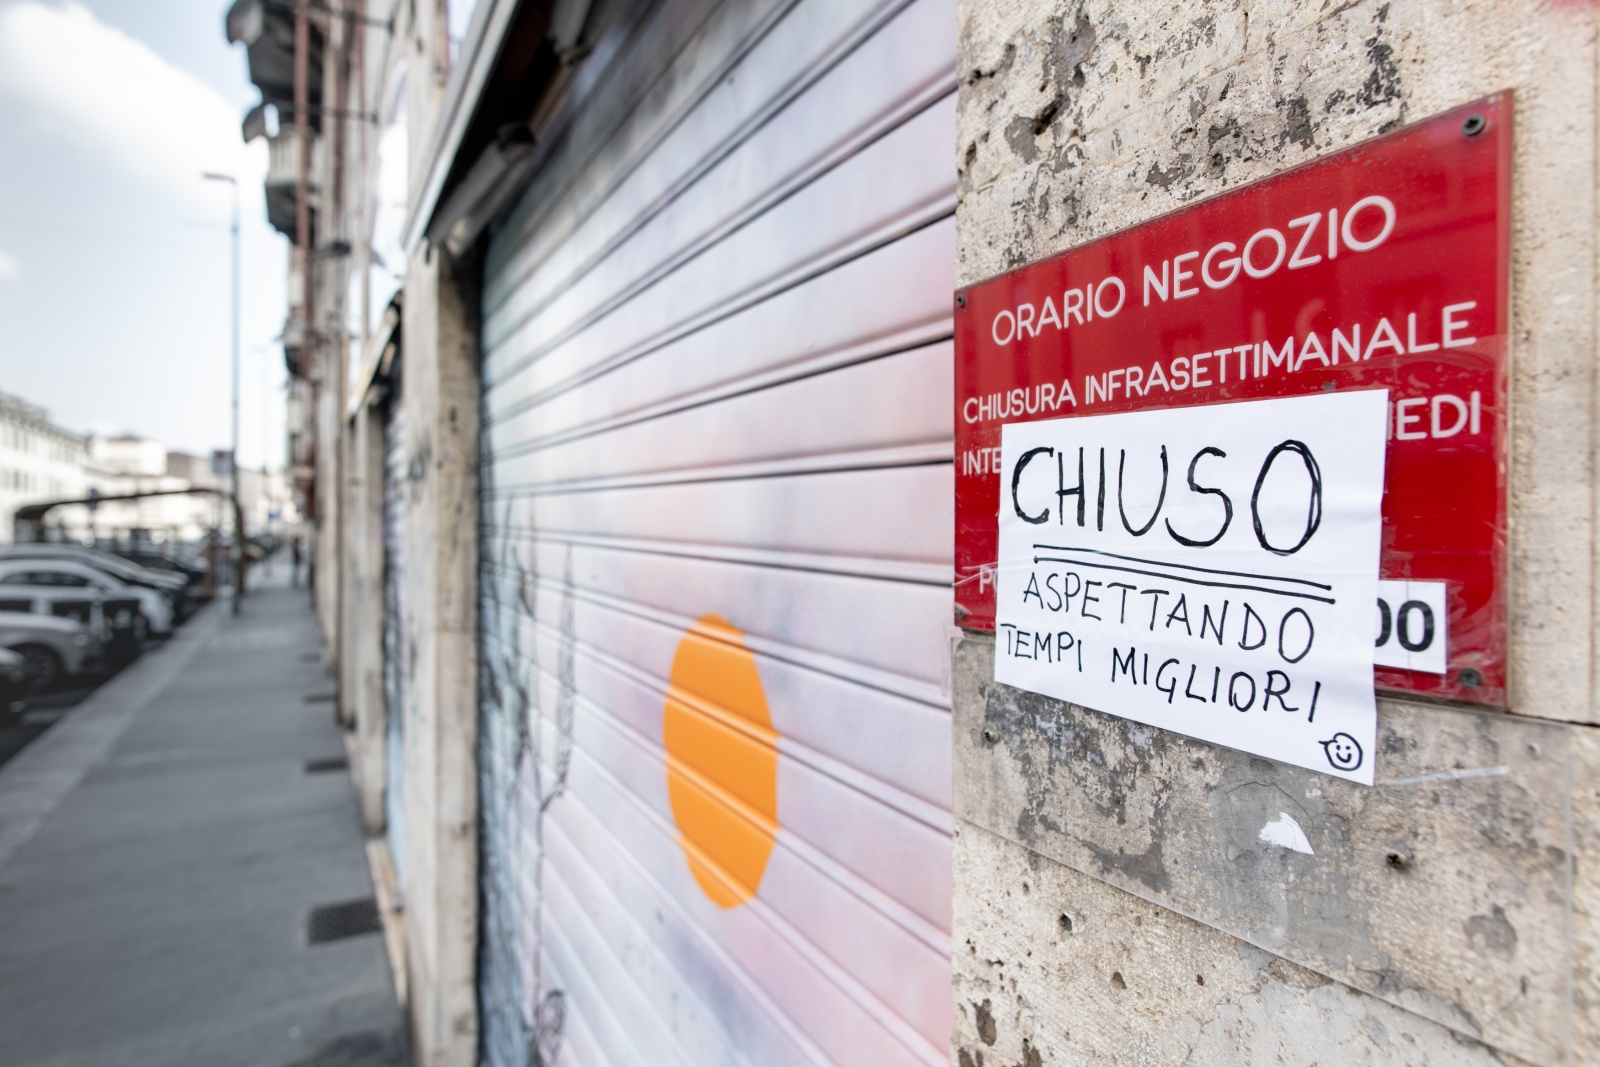 Italy lockdown (2020). The covid-19 pandemic